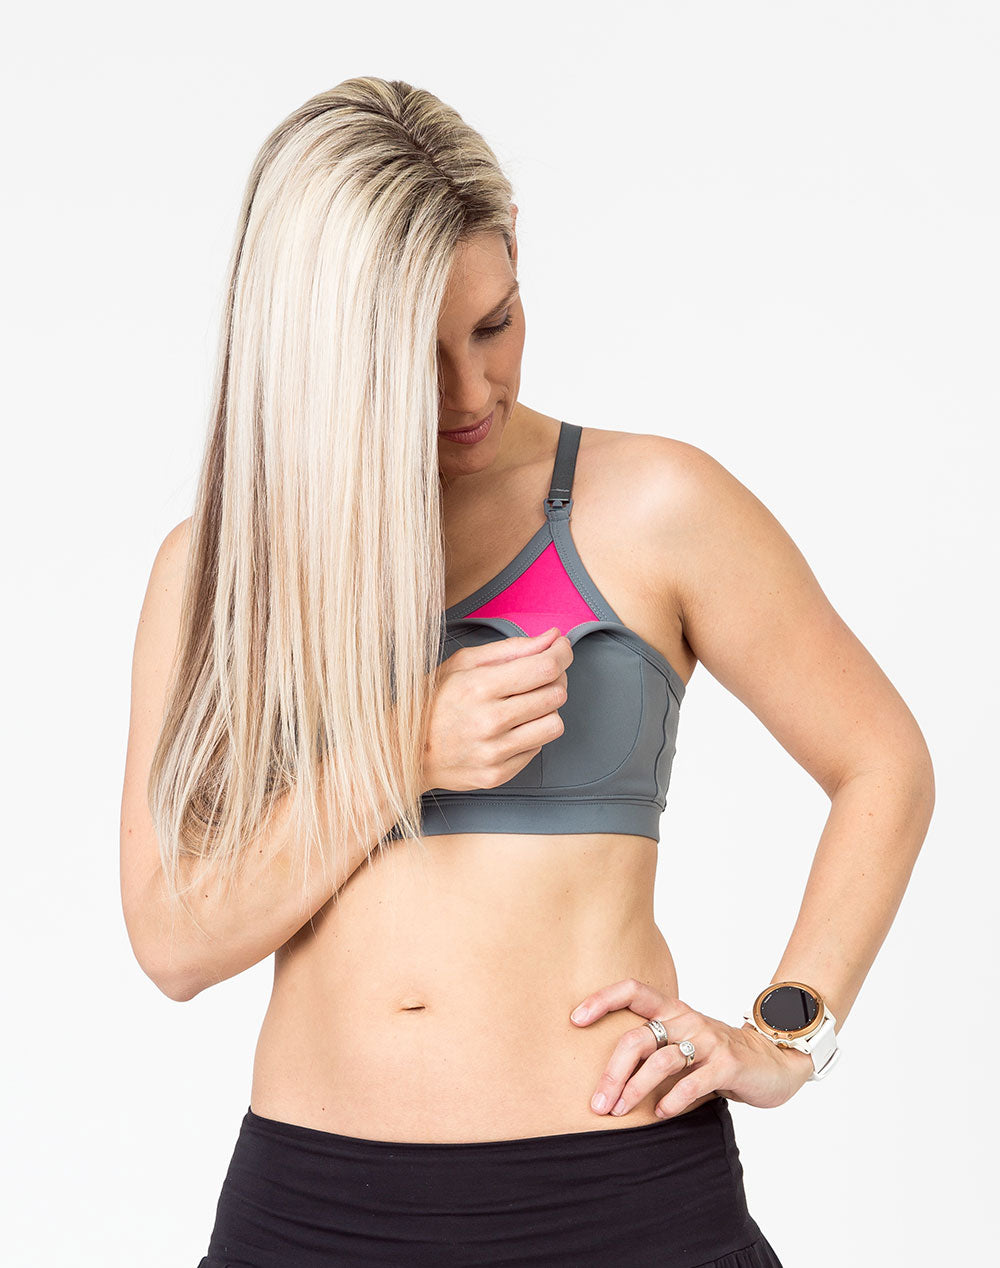 mom wearing a gray racerback nursing bra with one dropdown cup unclipped and pink lining